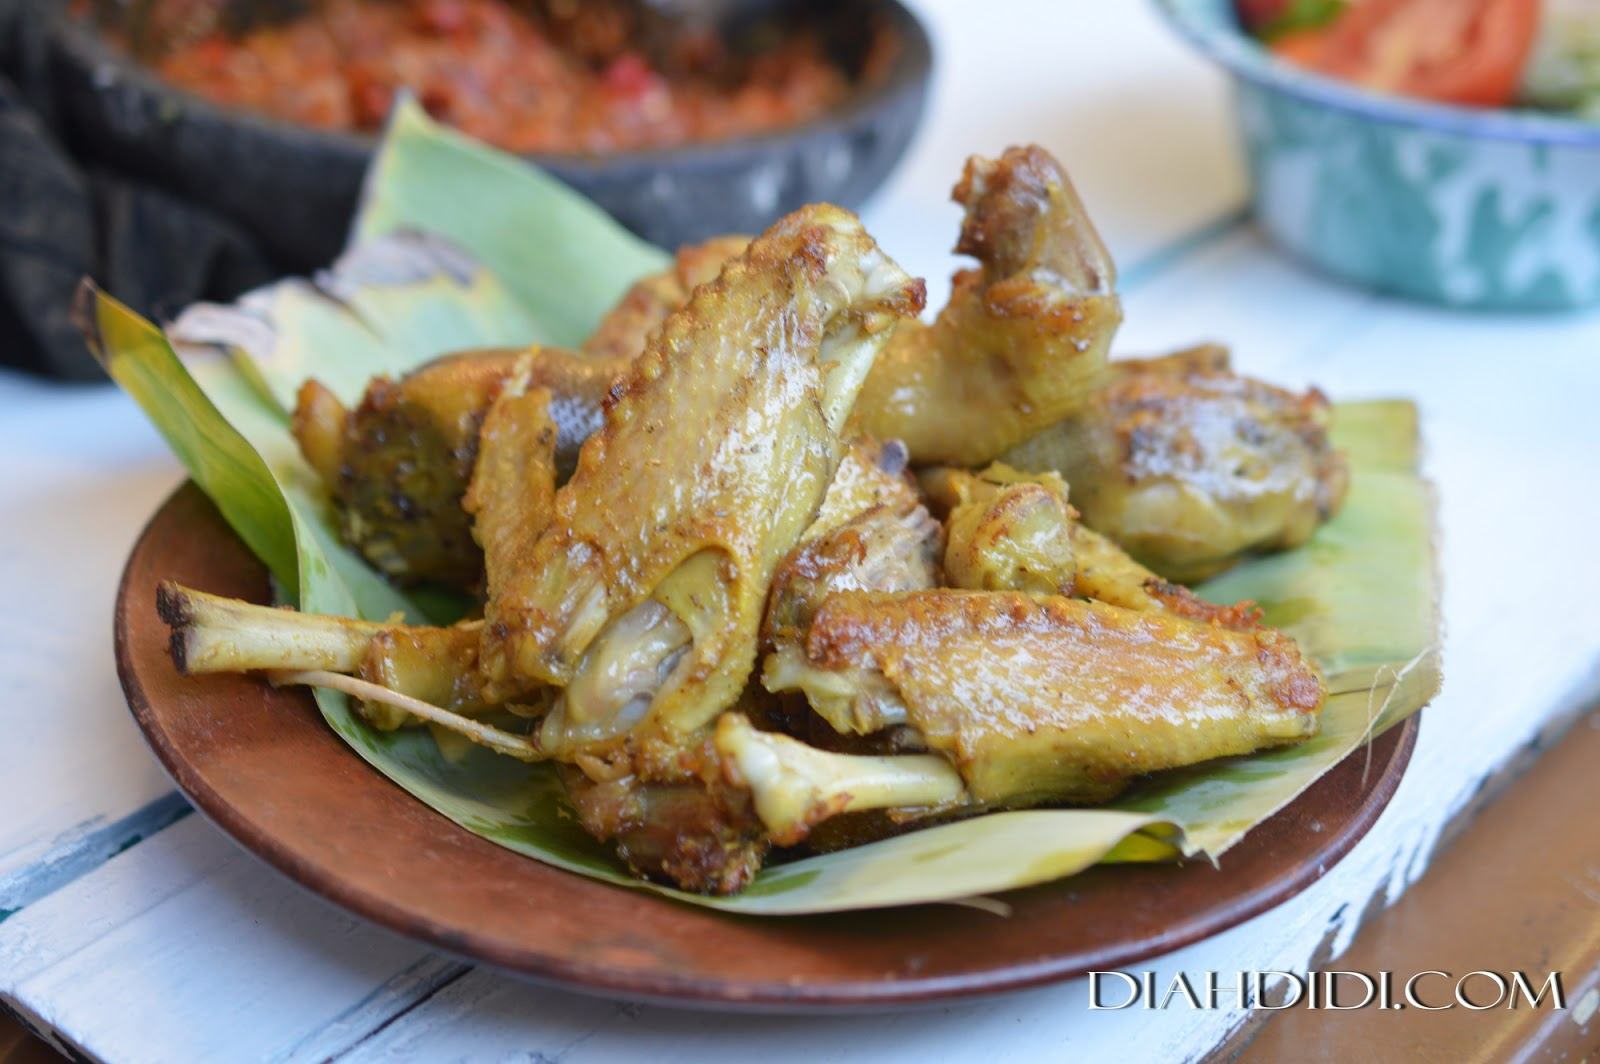 Resep kue dating goreng ayam